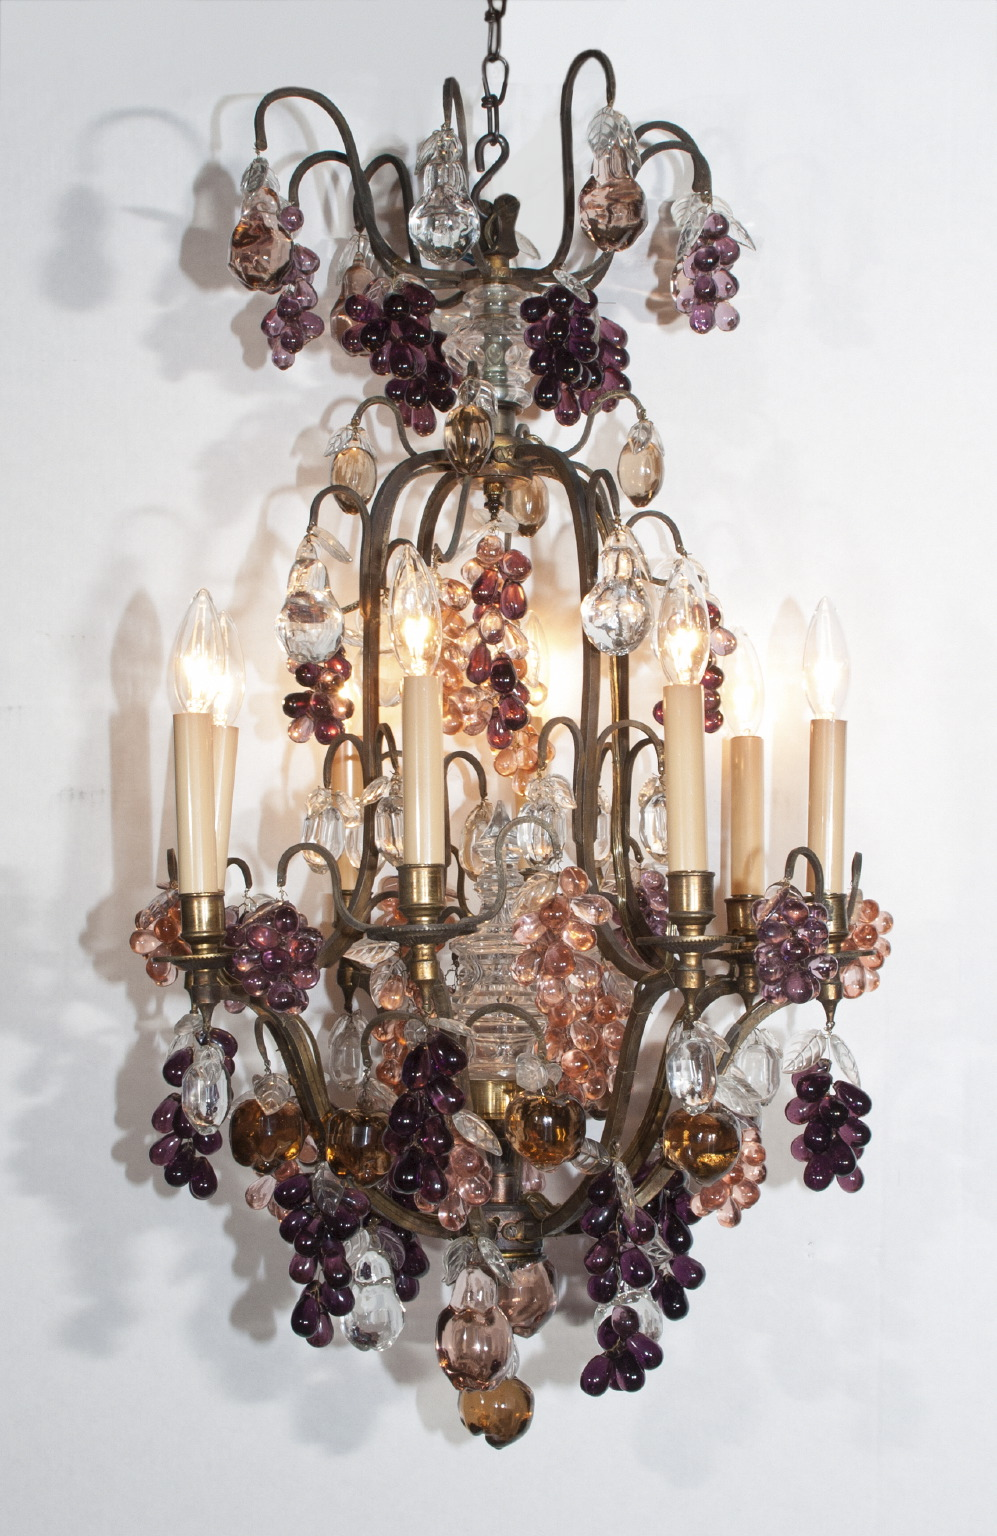 Louis XV Bronze and Baccarat Crystal Chandelier - Louis XV Bronze And Baccarat Crystal Chandelier French Antique Shop